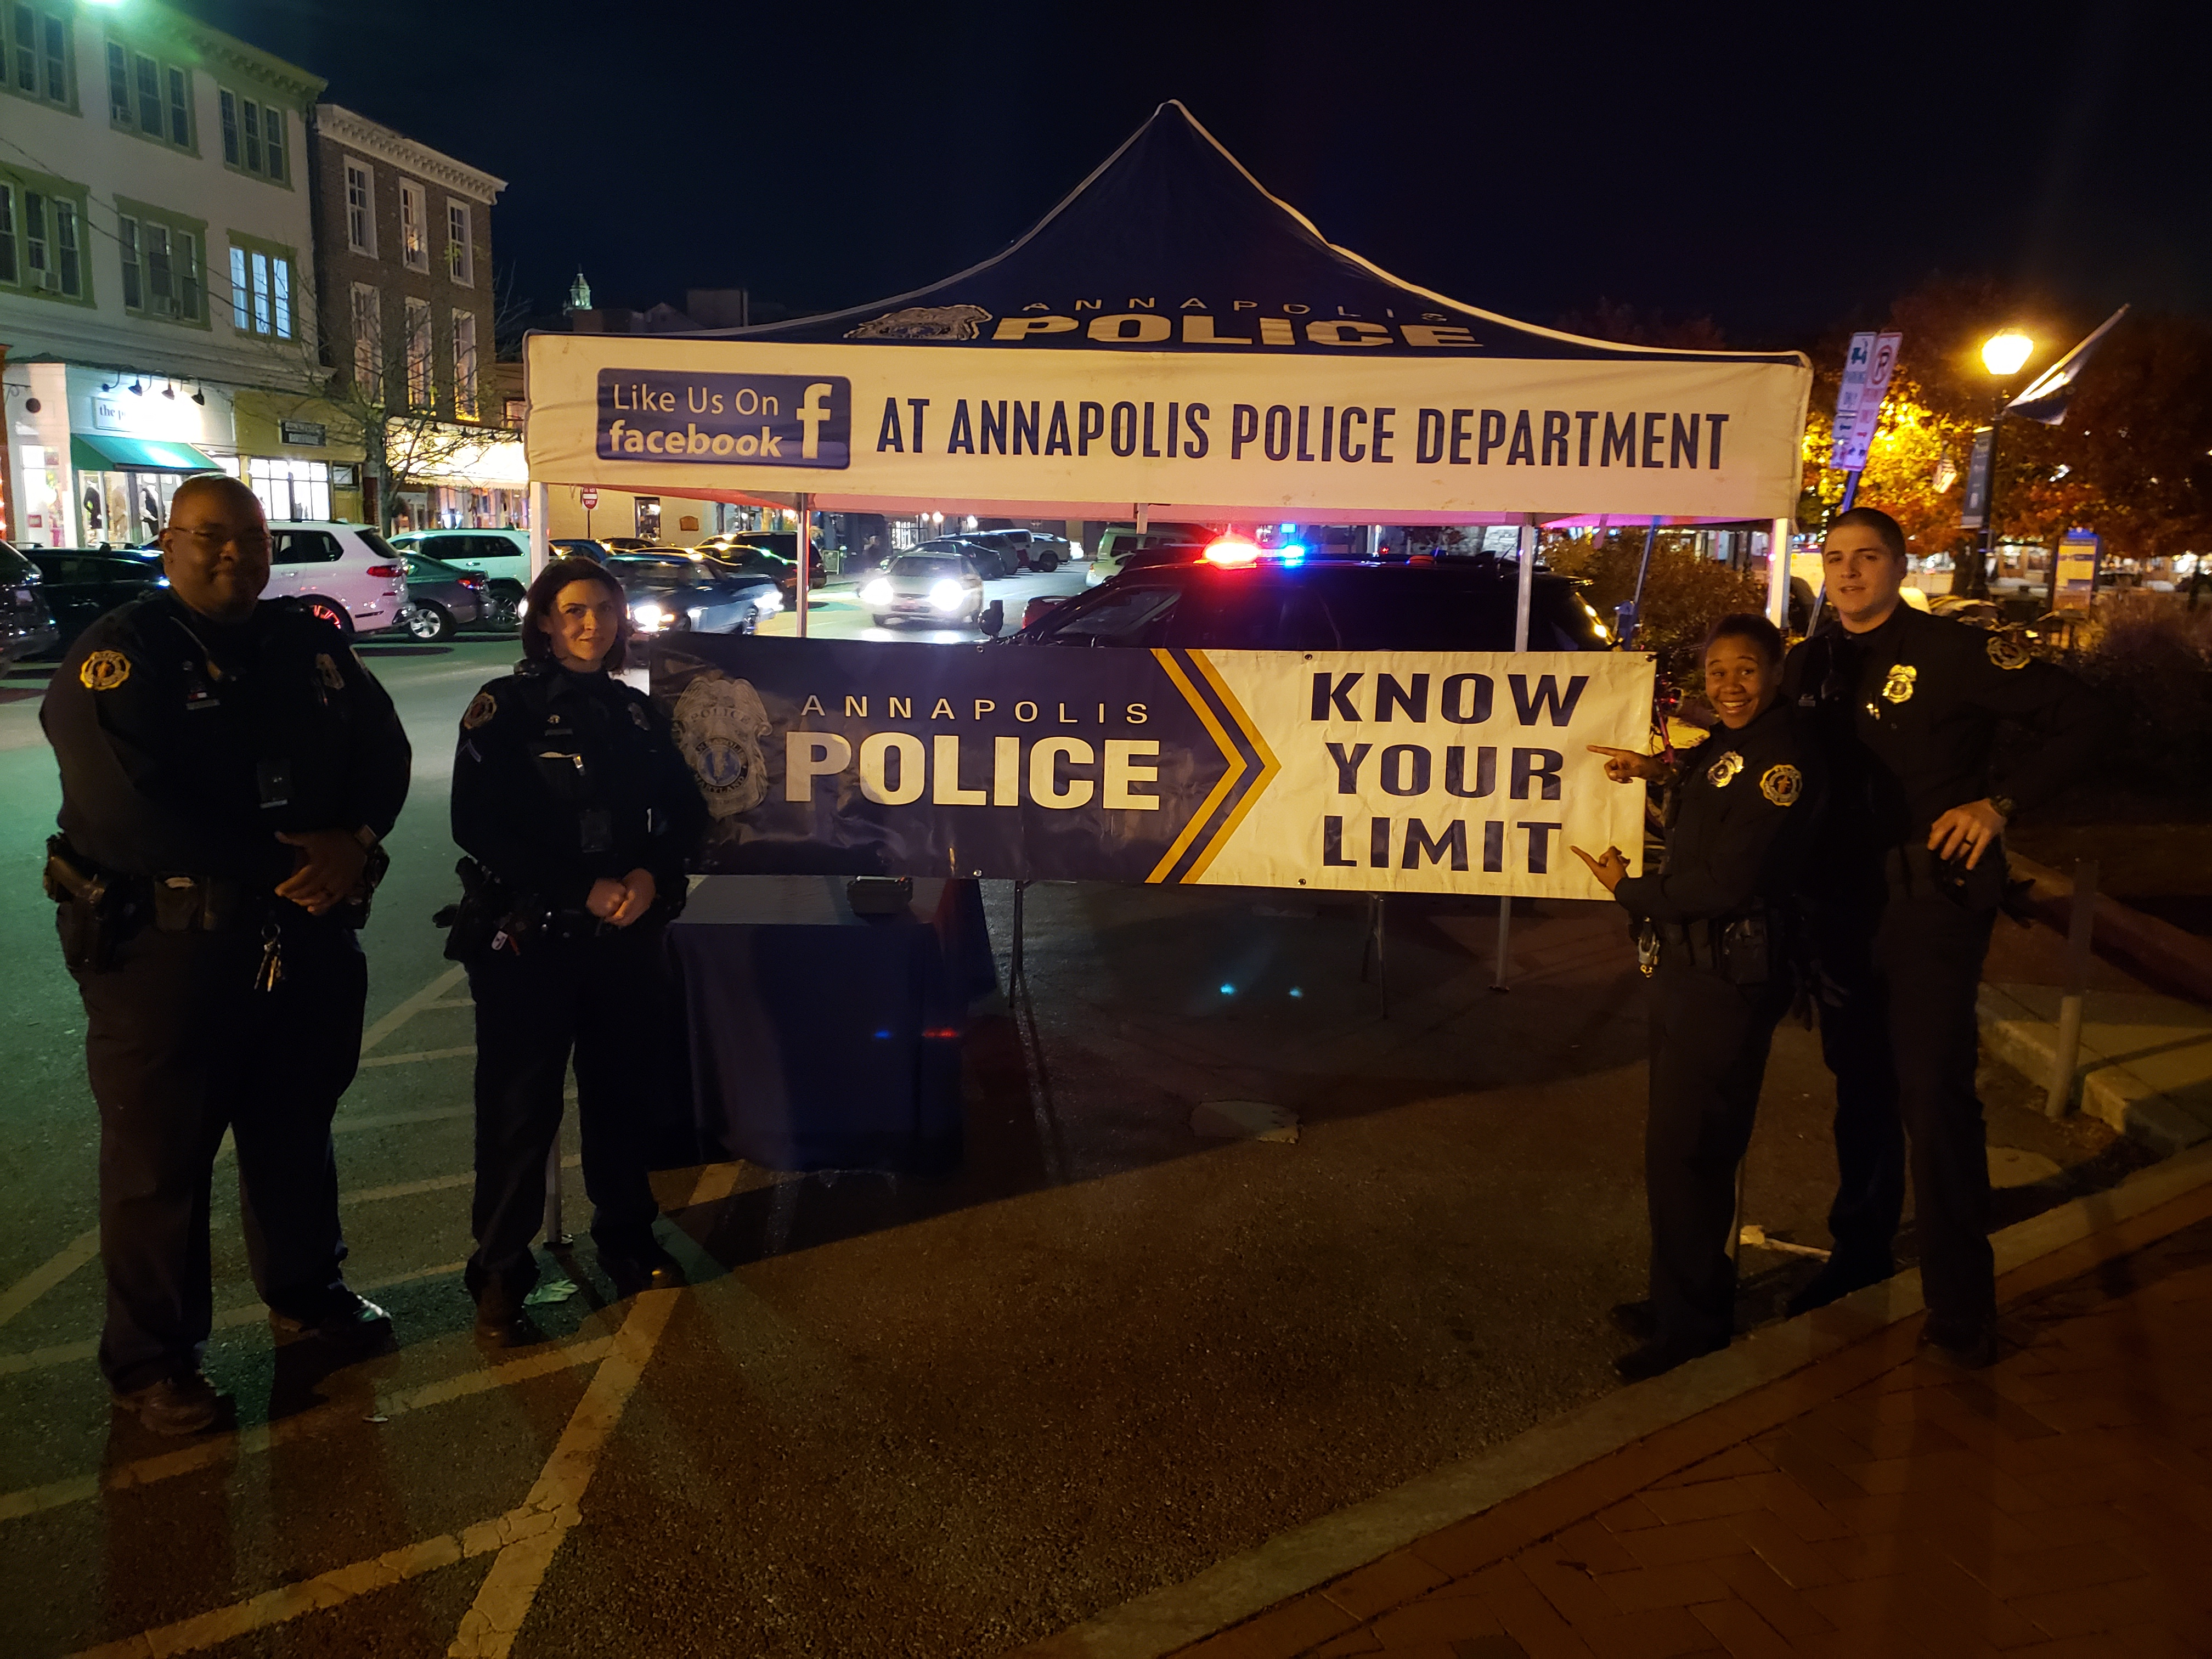 A group of uniformed police officers stands in front of a tent with a Know Your Limit banner.